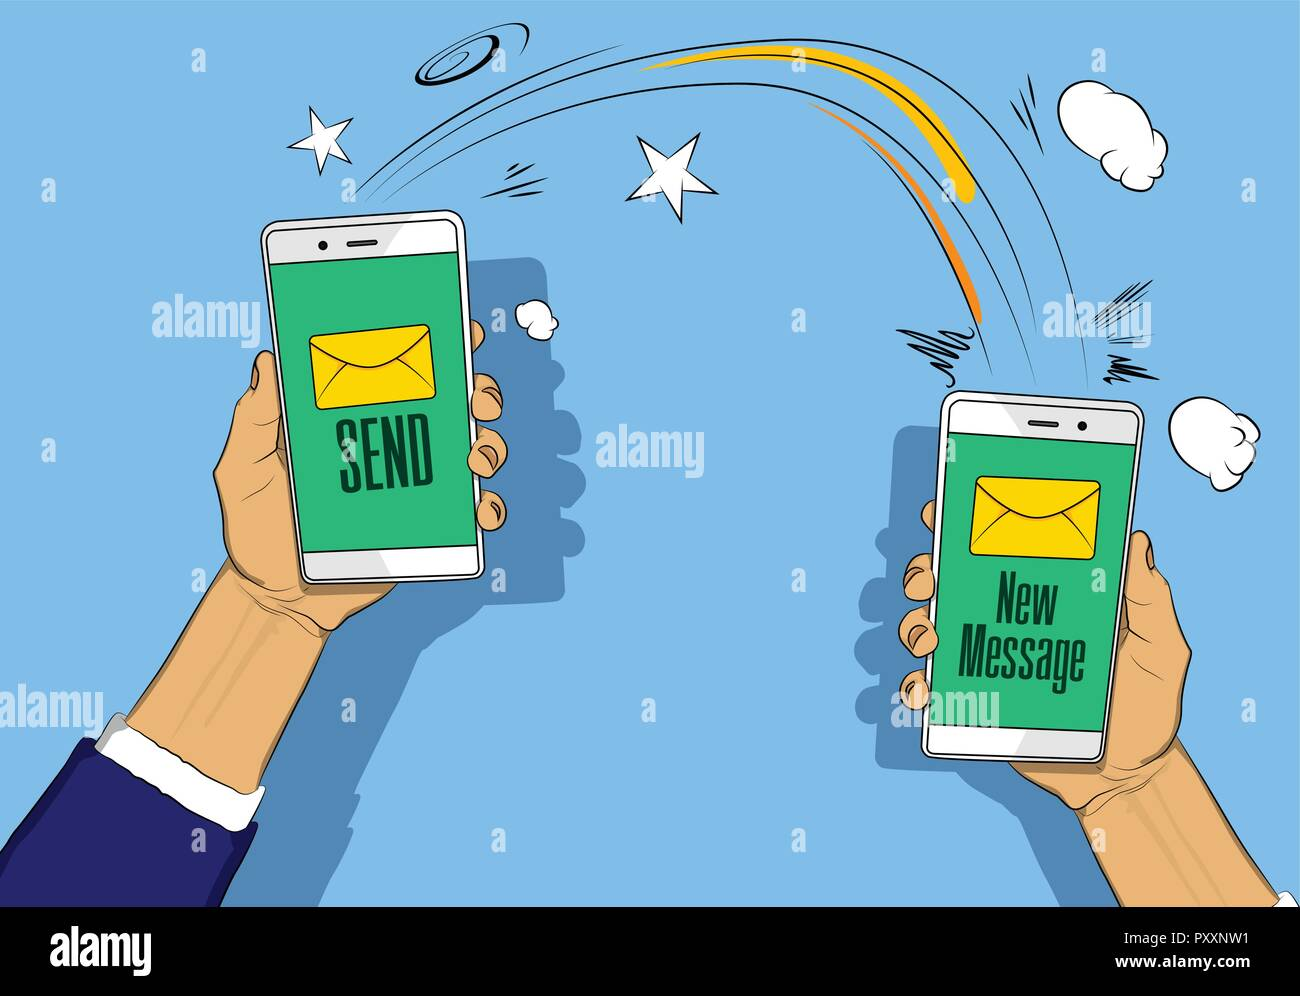 Hands holding phones with letter, send and new message button on the screen. Vector illustrated retro comic book cartoon for advertisement, web sites, - Stock Image